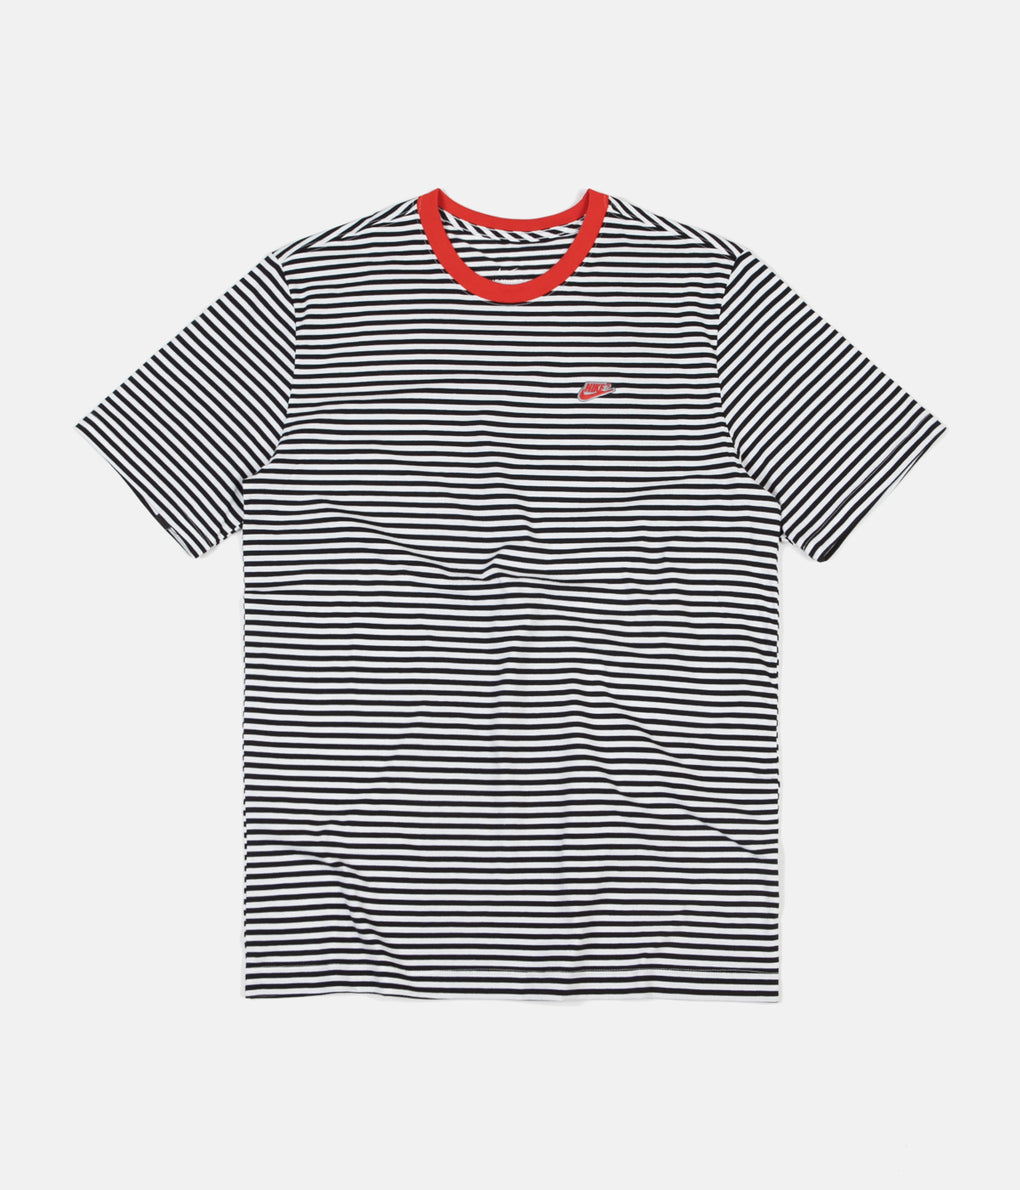 Nike Mini Futura 4 T-Shirt - Black / Habanero Red / Black